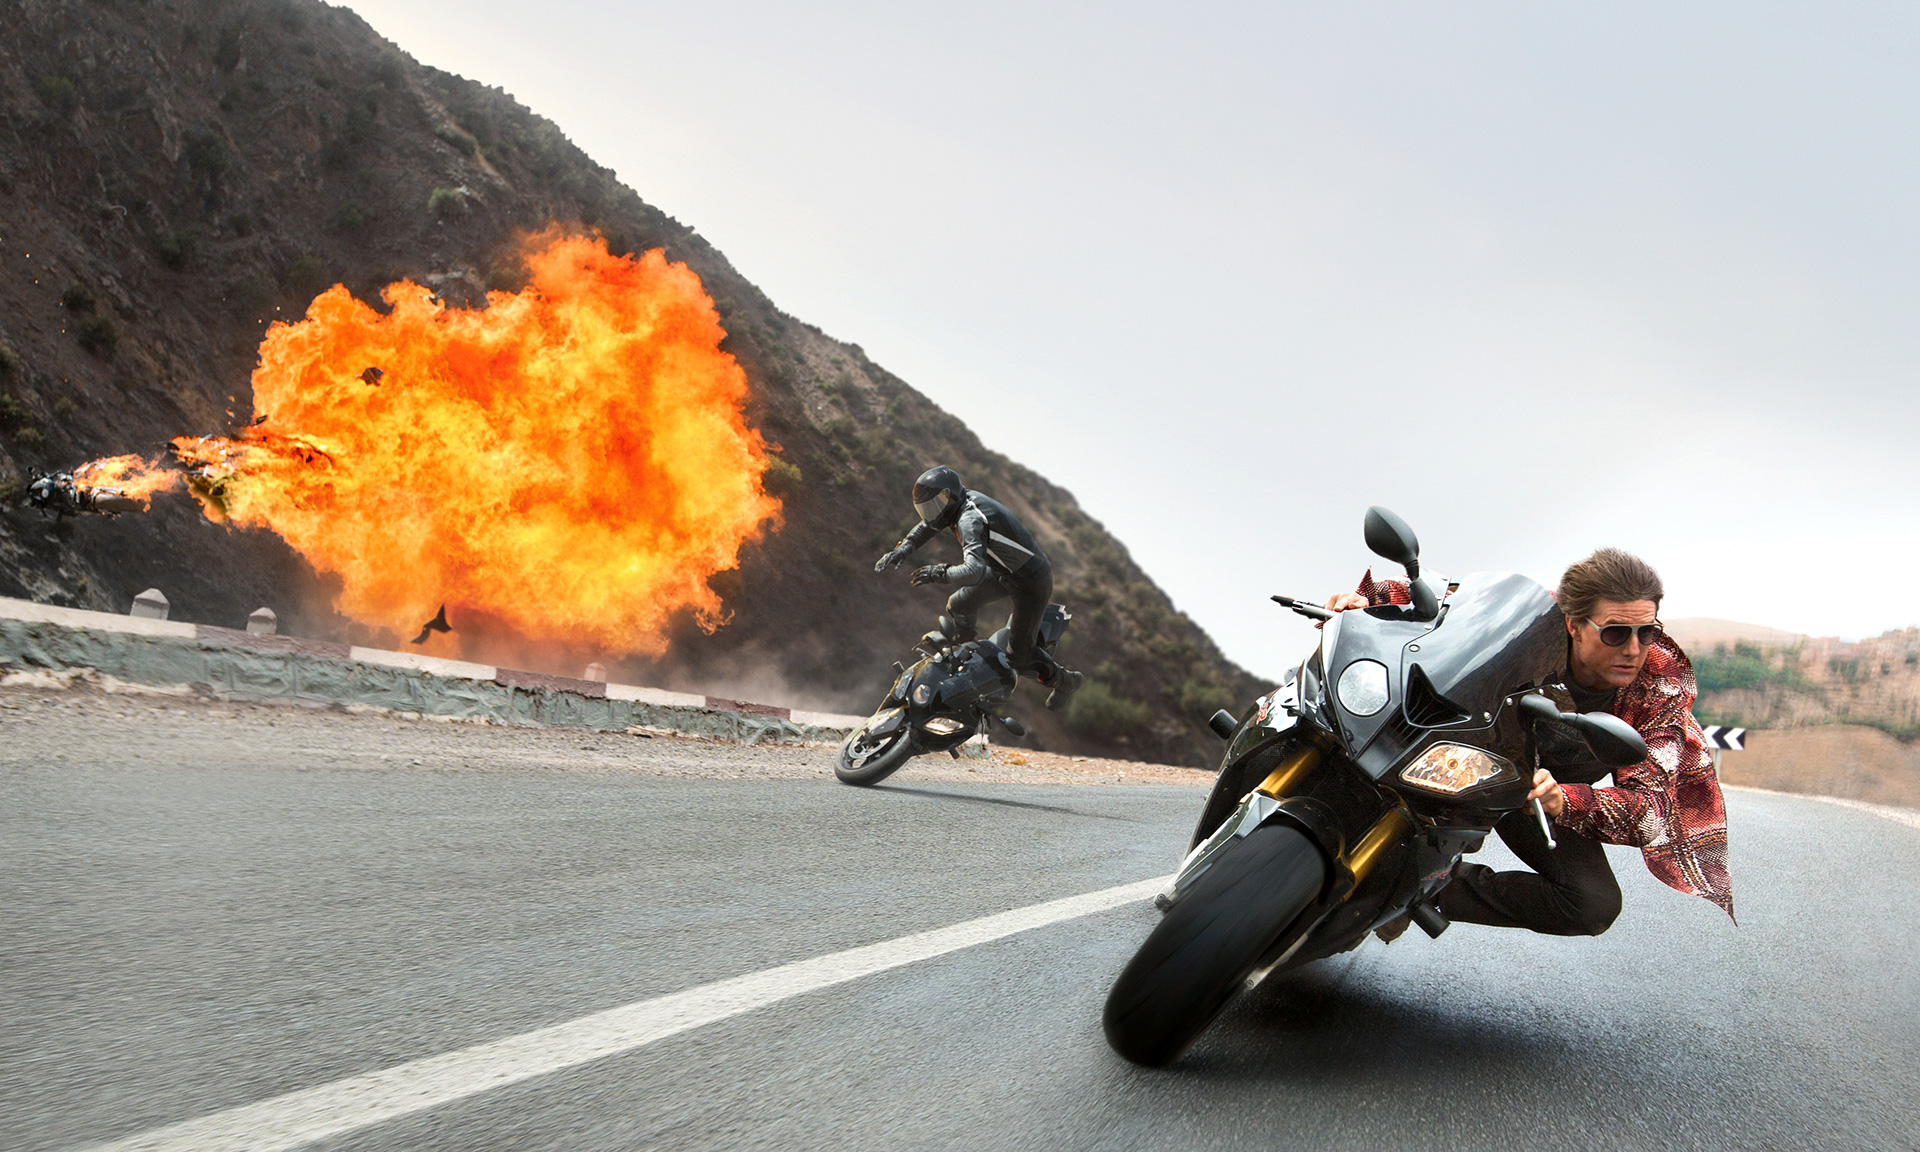 mission-impossible-rogue-nation-motorcycle-explosion_1920_0.jpg